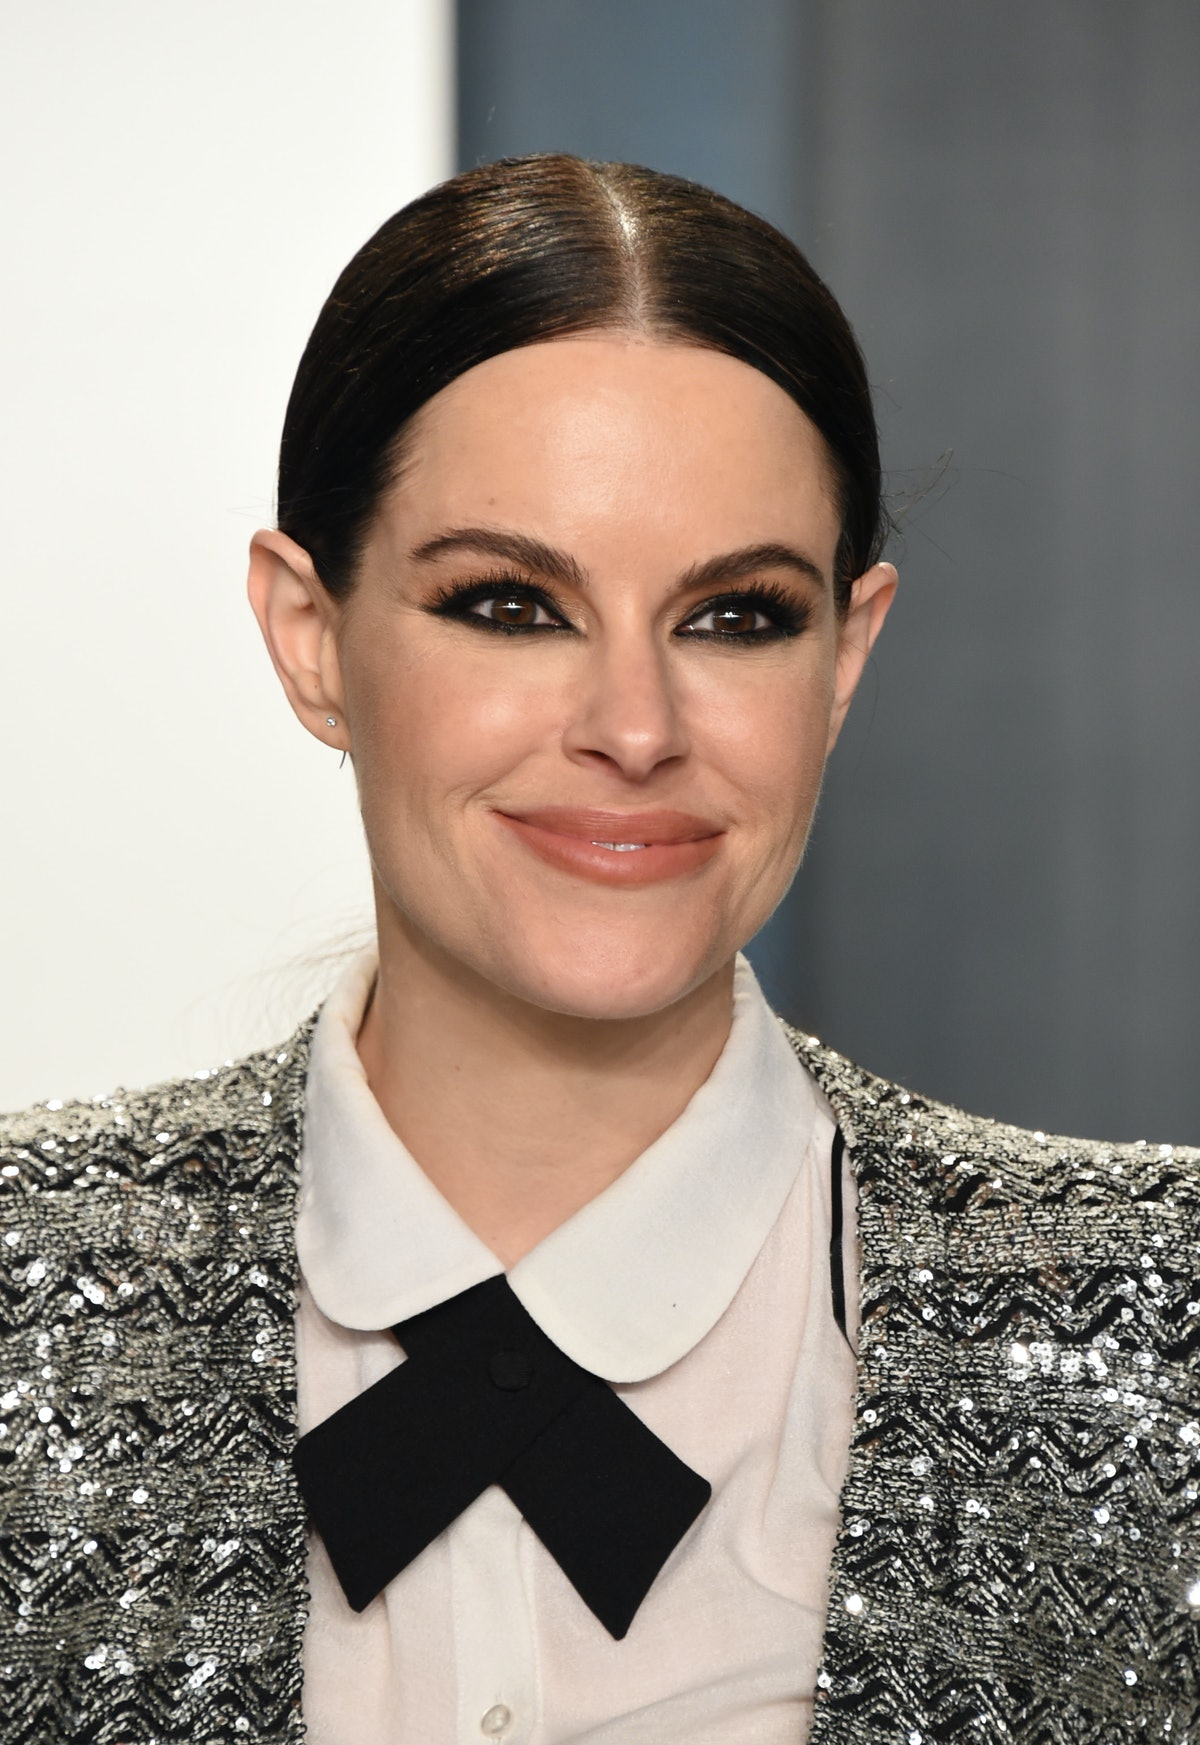 Emily Hampshire became friends with Demi Lovato after they slid into her DMs.